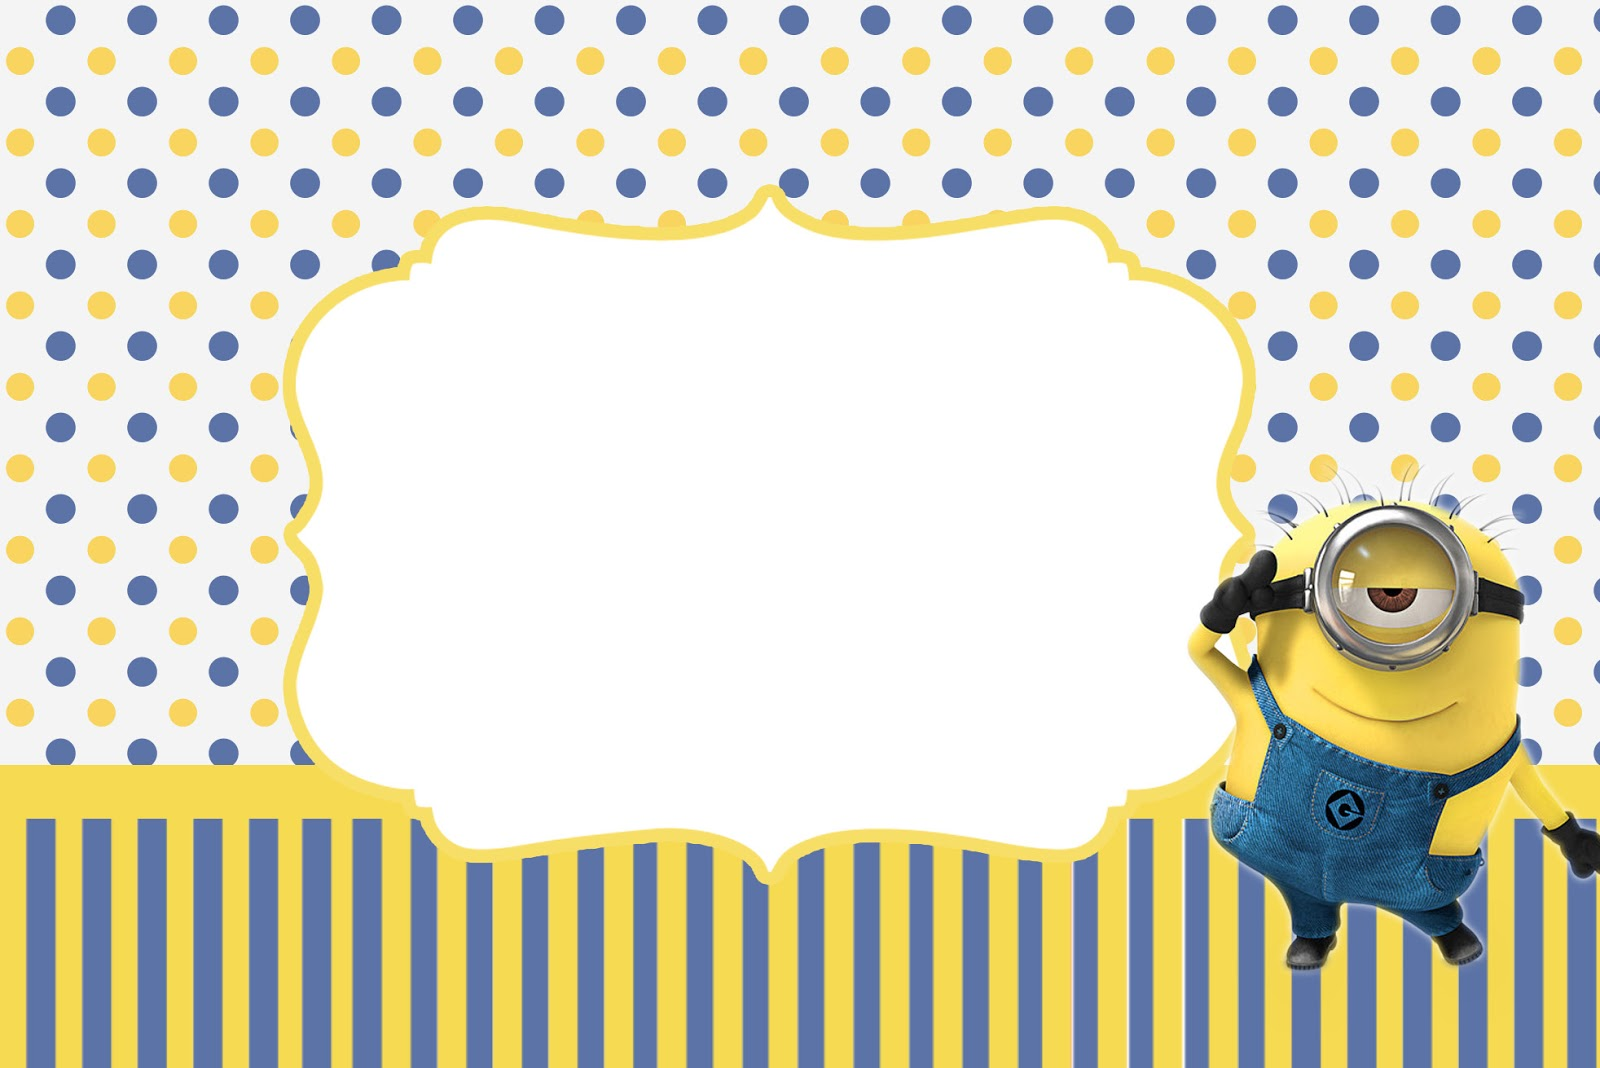 graphic about Minions Printable Invitations called Encouraged within Minions Get together Invites, Totally free Printables. - Oh